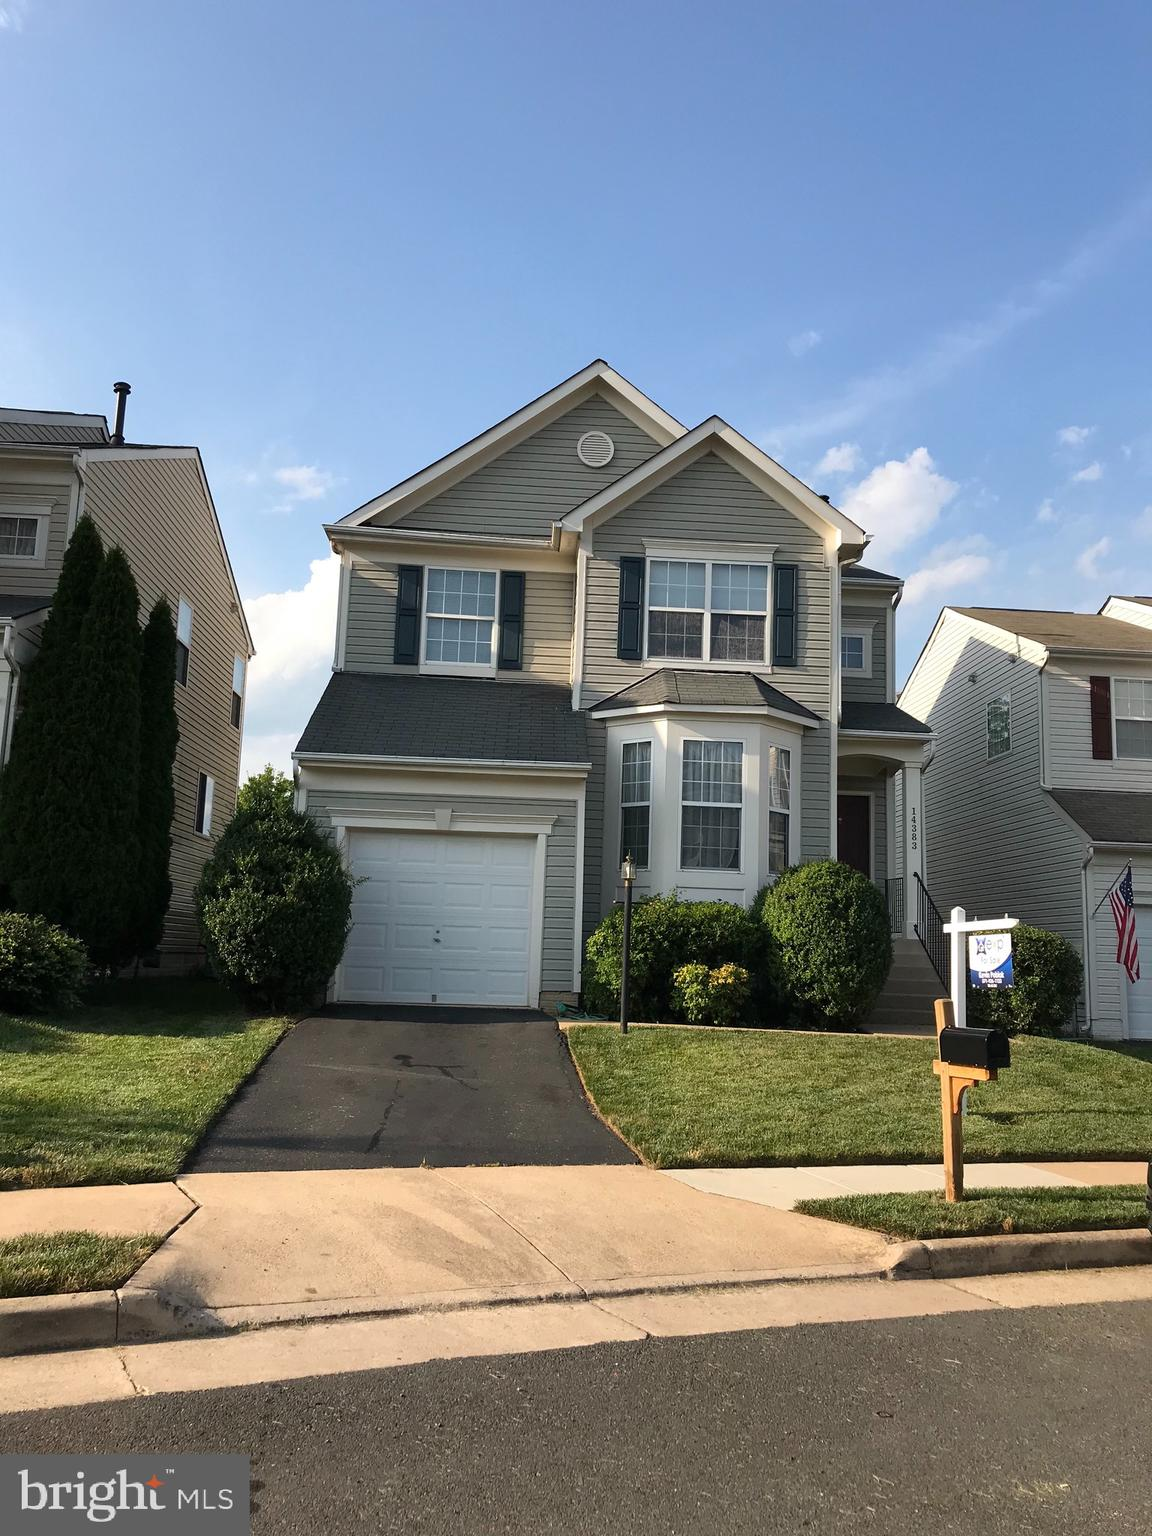 Nice 3 bedroom 2.5 bathroom colonial home conveniently located near I-66 and Rt. 15, shopping center